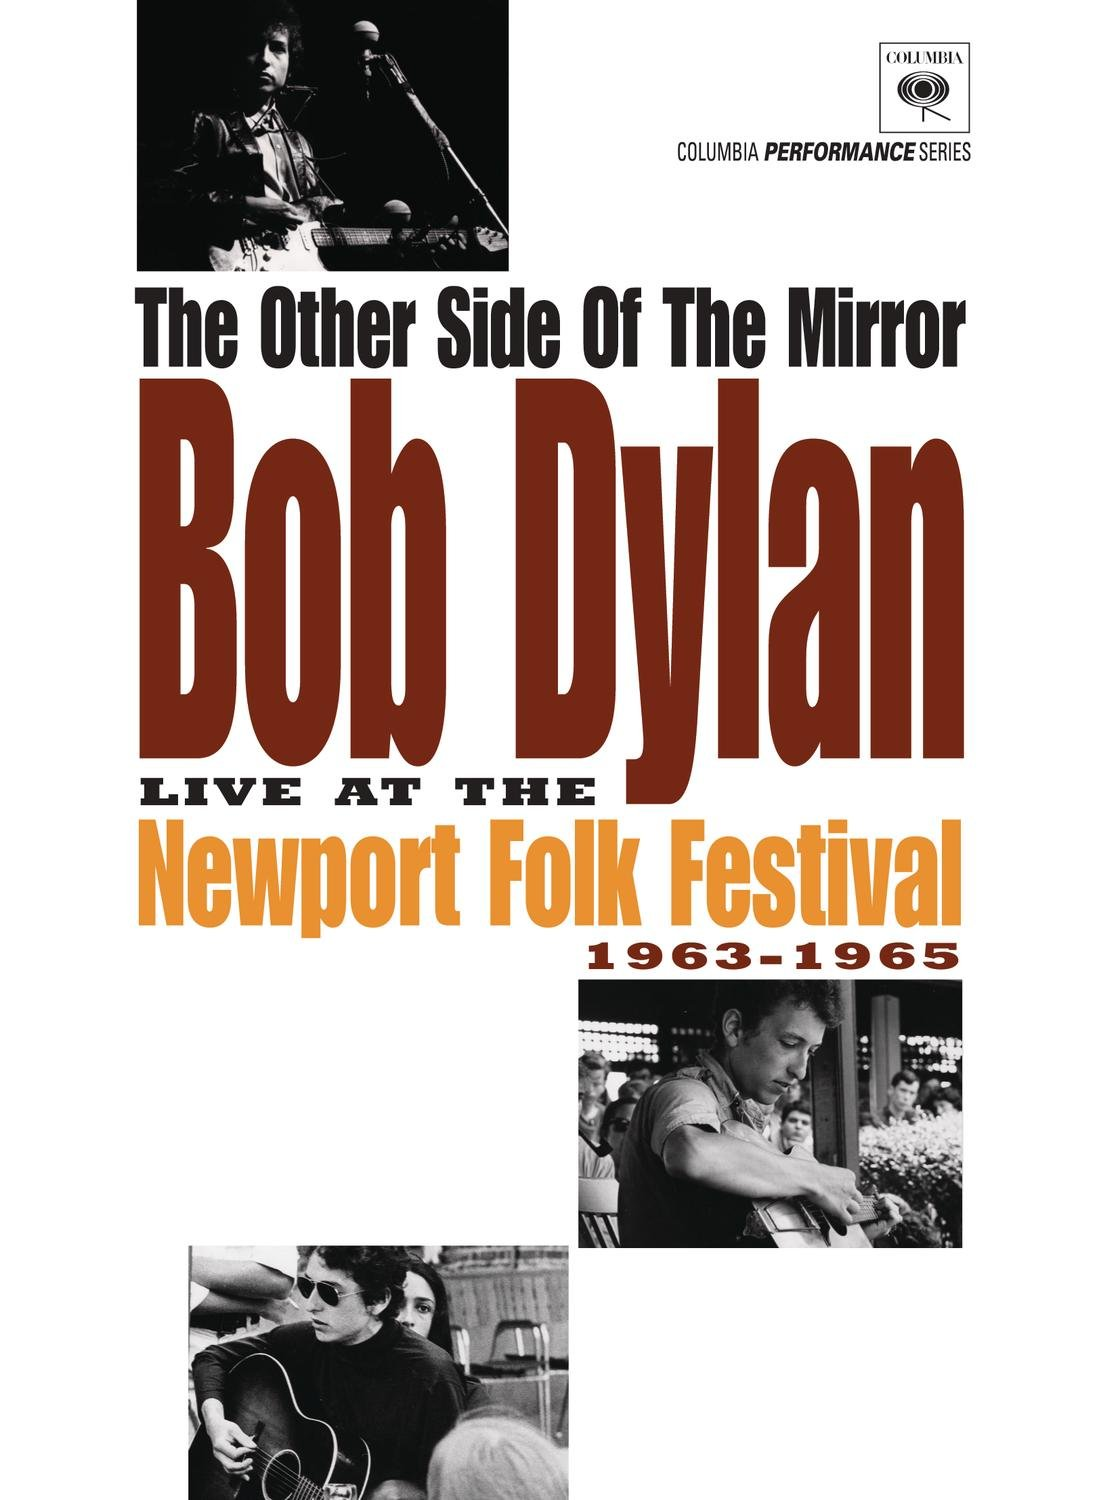 The Other Side of the Mirror: Bob Dylan Live at Newport Folk Festival 1963-1965 by Sony Music